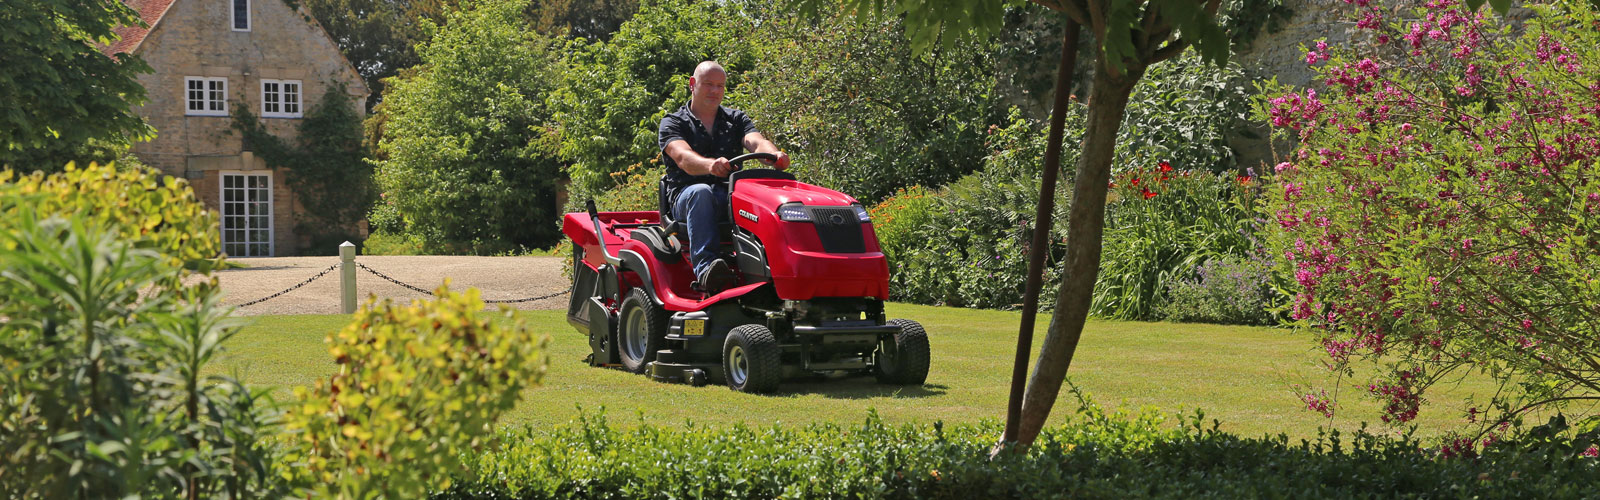 Countax C Series lawn garden tractor ride on mower cutting and collecting grass with PGC+